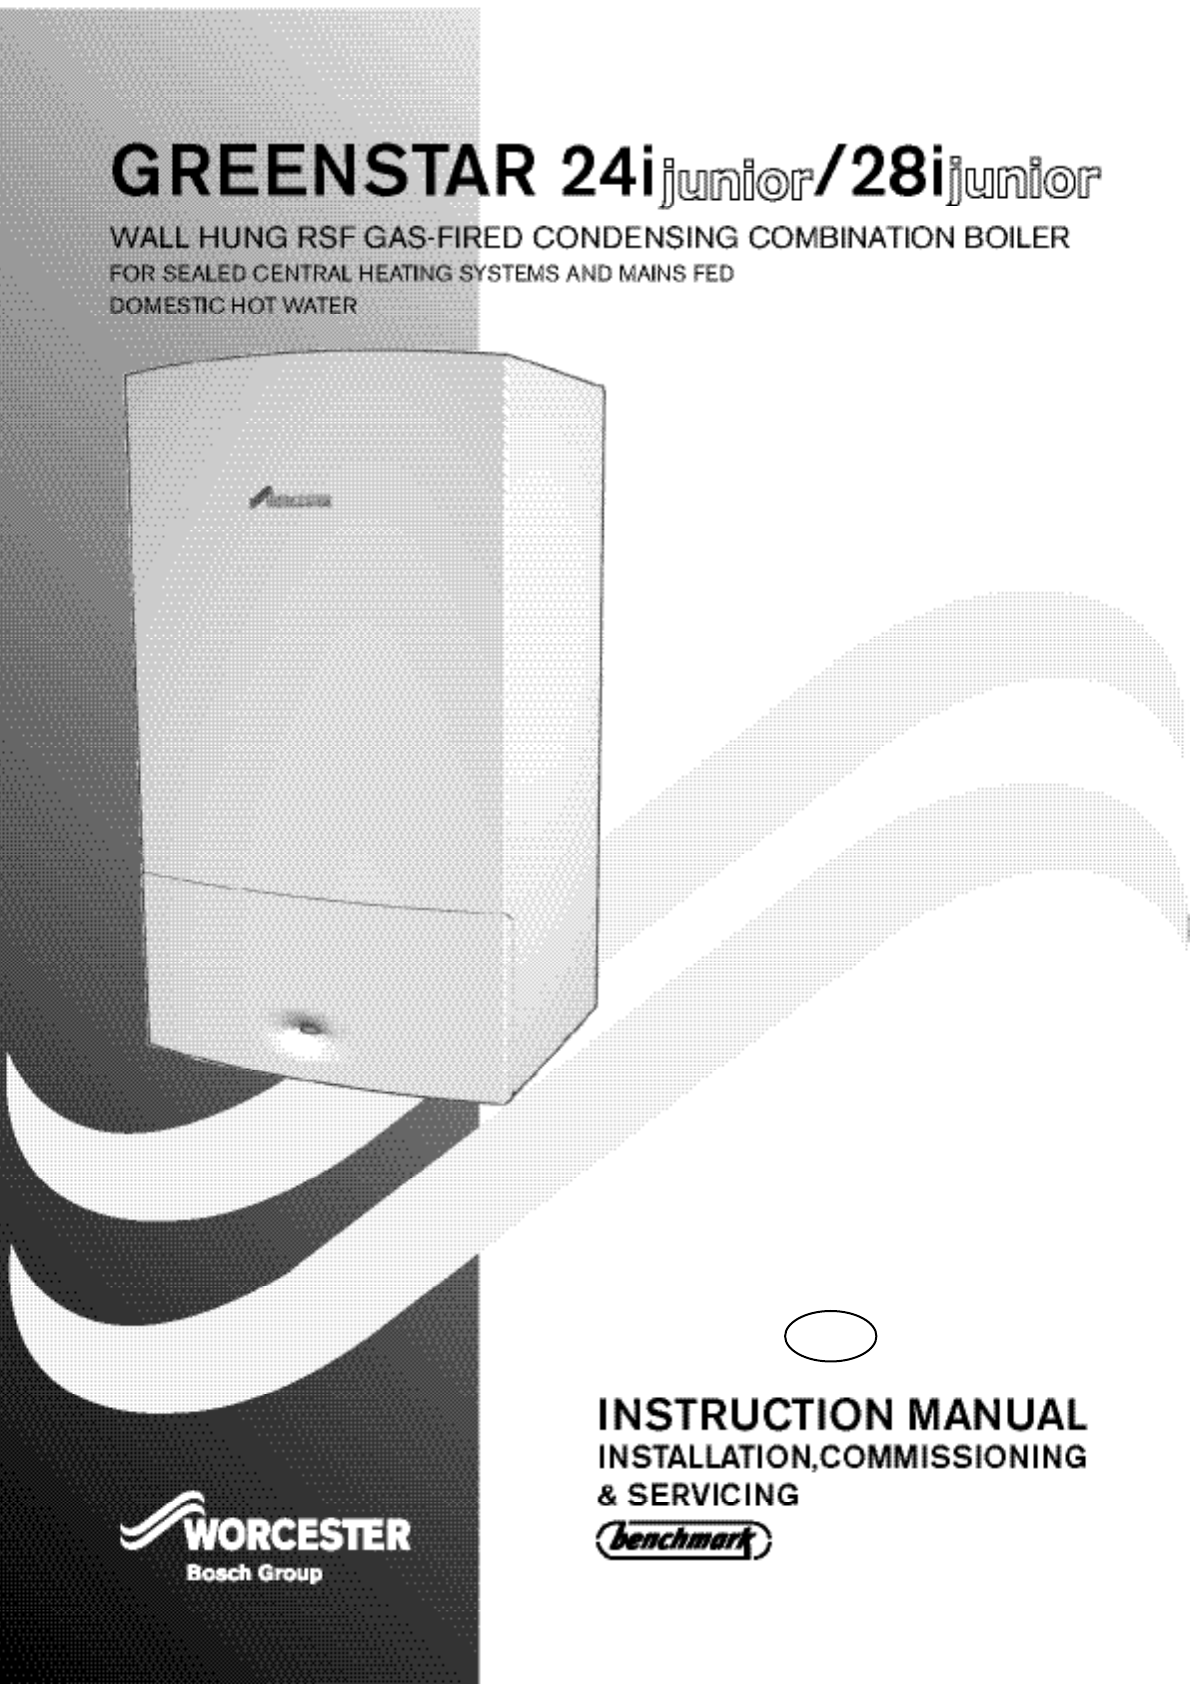 a3fff502 8fa2 4f73 8187 77dba4321894 bg1 bosch appliances boiler 28i junior user guide manualsonline com